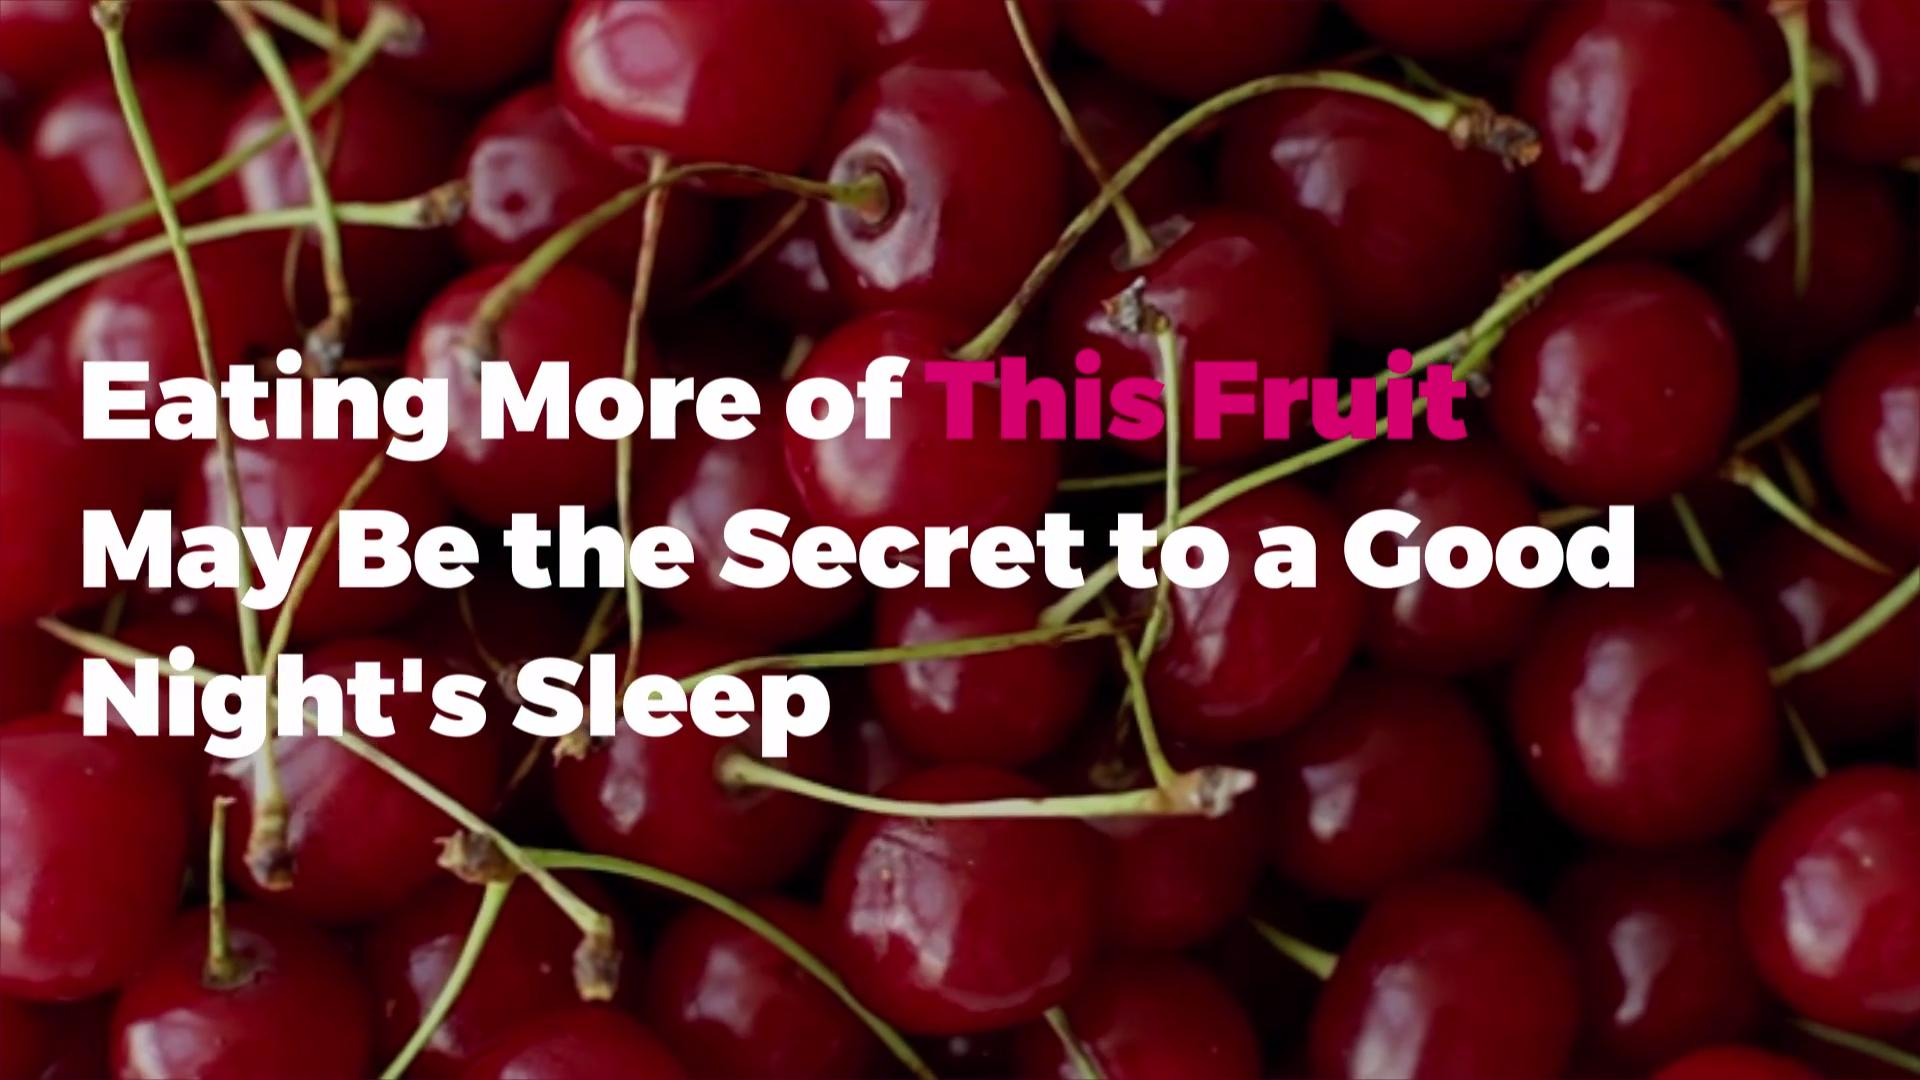 Eating More of This Fruit May Be the Secret to a Good Night's Sleep